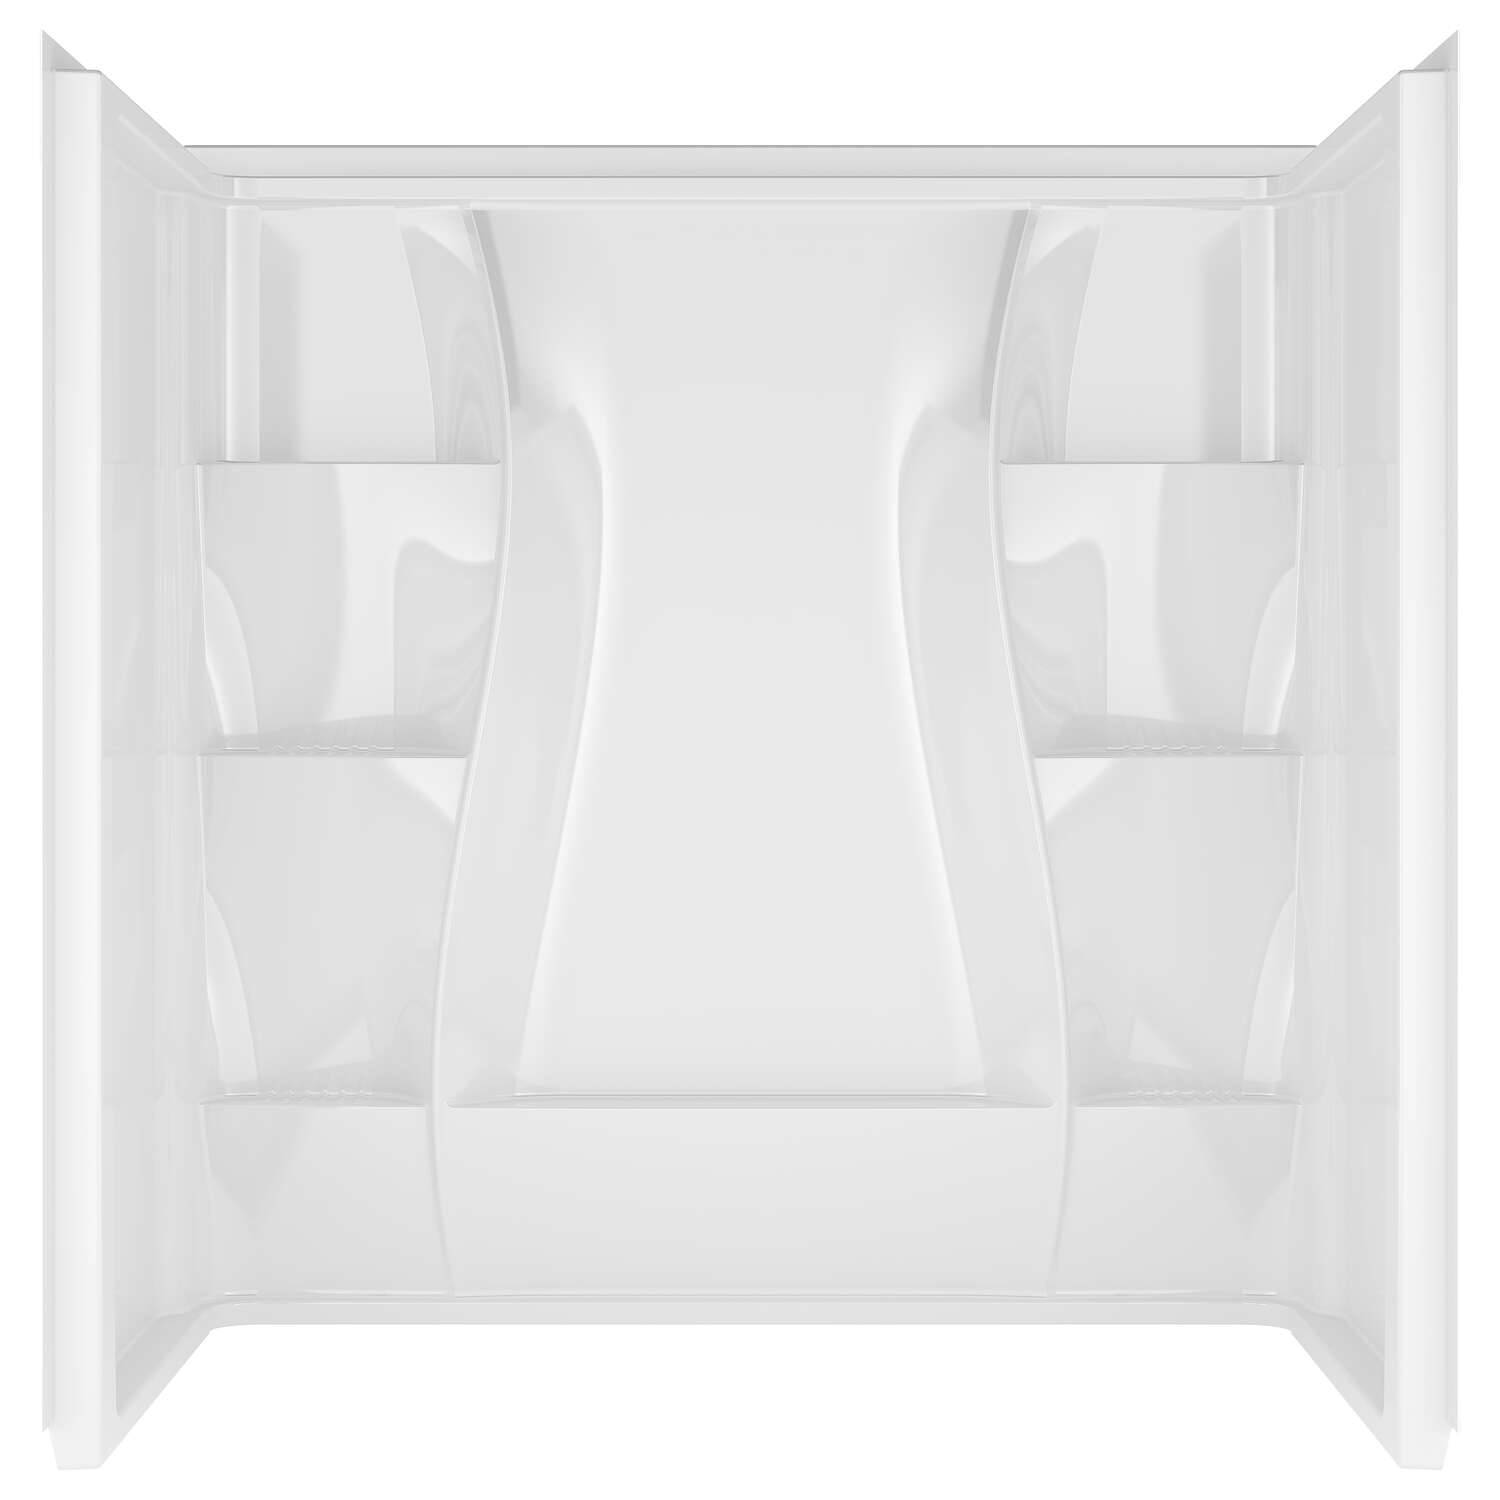 Delta Bathing System  Classic  60 in. H x 60 in. W x 32 in. L White  Bathtub Surround